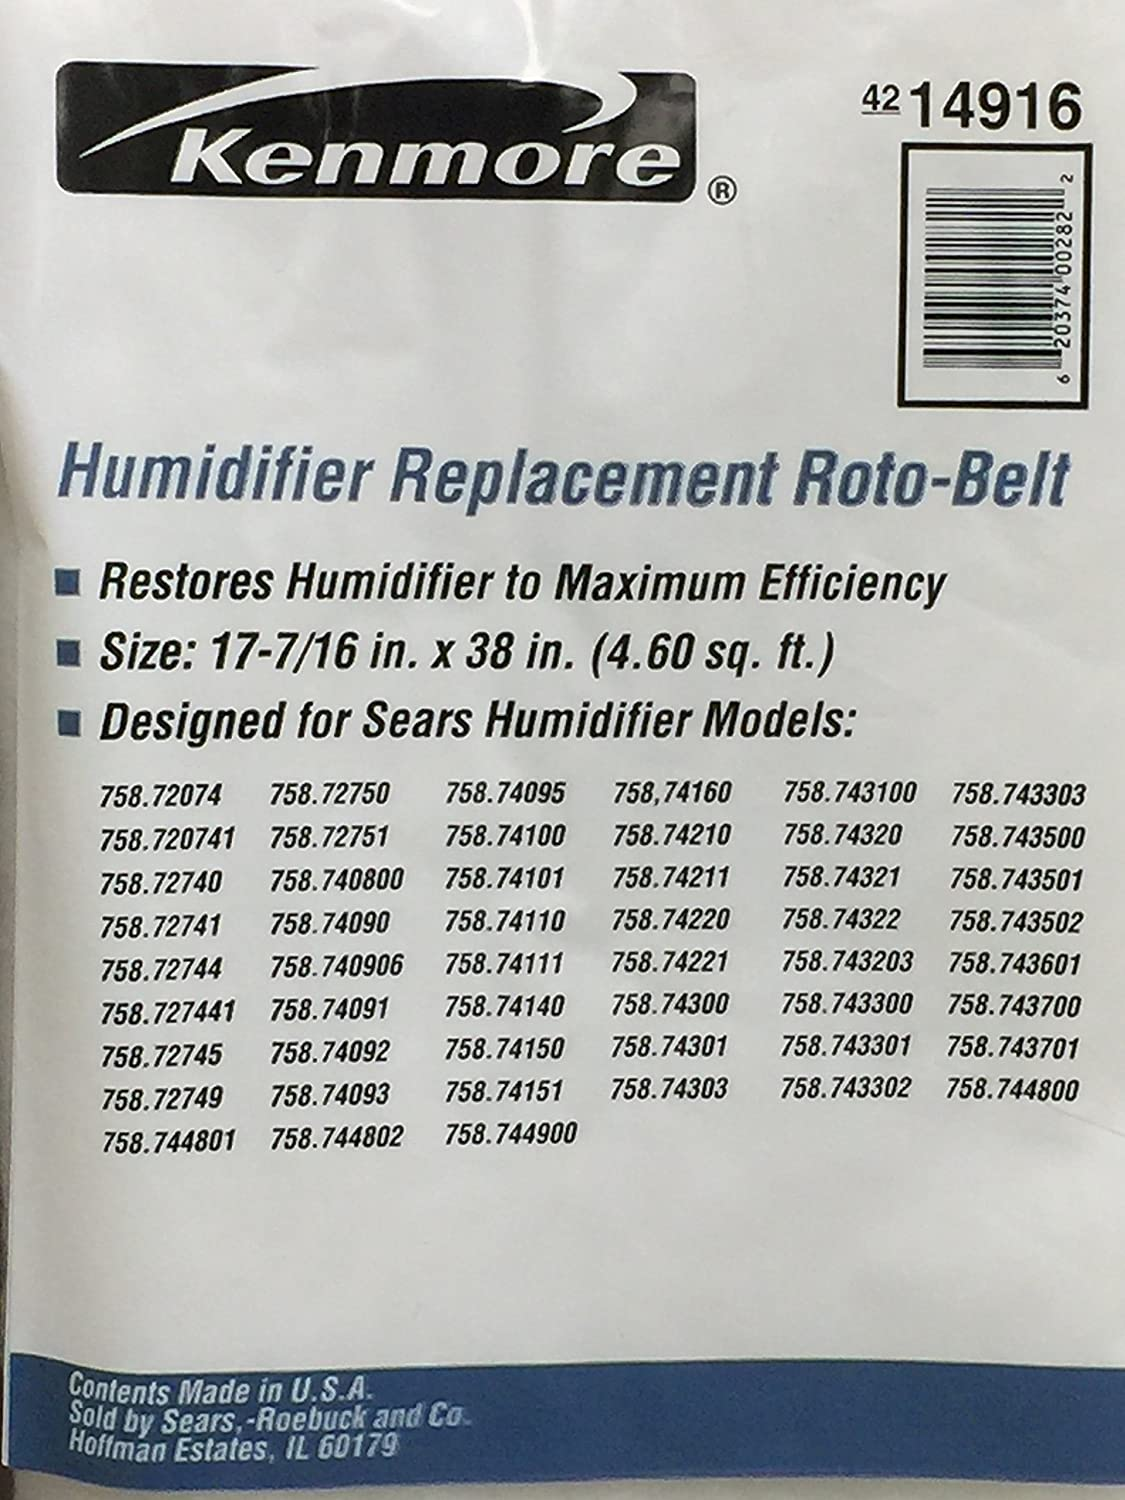 14ed433ce8db Kenmore Humidifier Replacement Roto-Belt No, 42-14916